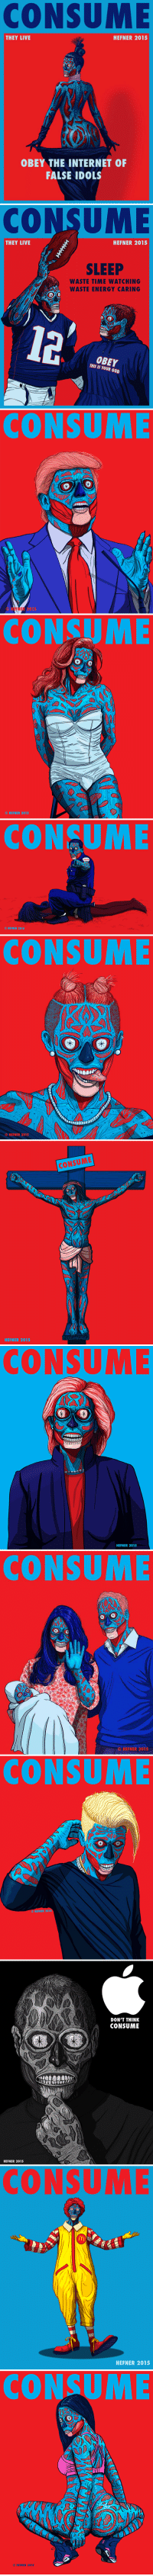 Energy, God, and Internet: CONSUME  THEY LIVE  HEFNER 2015  OBEY THE INTERNET OF  FALSE IDOLS   CONSUME  THEY LIVE  HEFNER 2015  SLEEP  WASTE TIME WATCHING  WASTE ENERGY CARING  THIS YOUR GOD  IS  CONSUME  EUR 015   CONSUME  O HEFNER 2015   O HEFNER 2015  CONSUME   CONSU  O HEFNER 2015   HEFNER 2015  CONSUME   CONSUME  HEFNER 2015   [O  HEFNER 2015   CONSUME  O HEFNER 2015   HEFNER 2015  DON'T THINK  CONSUME   CONSUME  HEFNER 2015  AN   CONSUME  HEFNER 2015  O Sweet new sunglasses on imgur